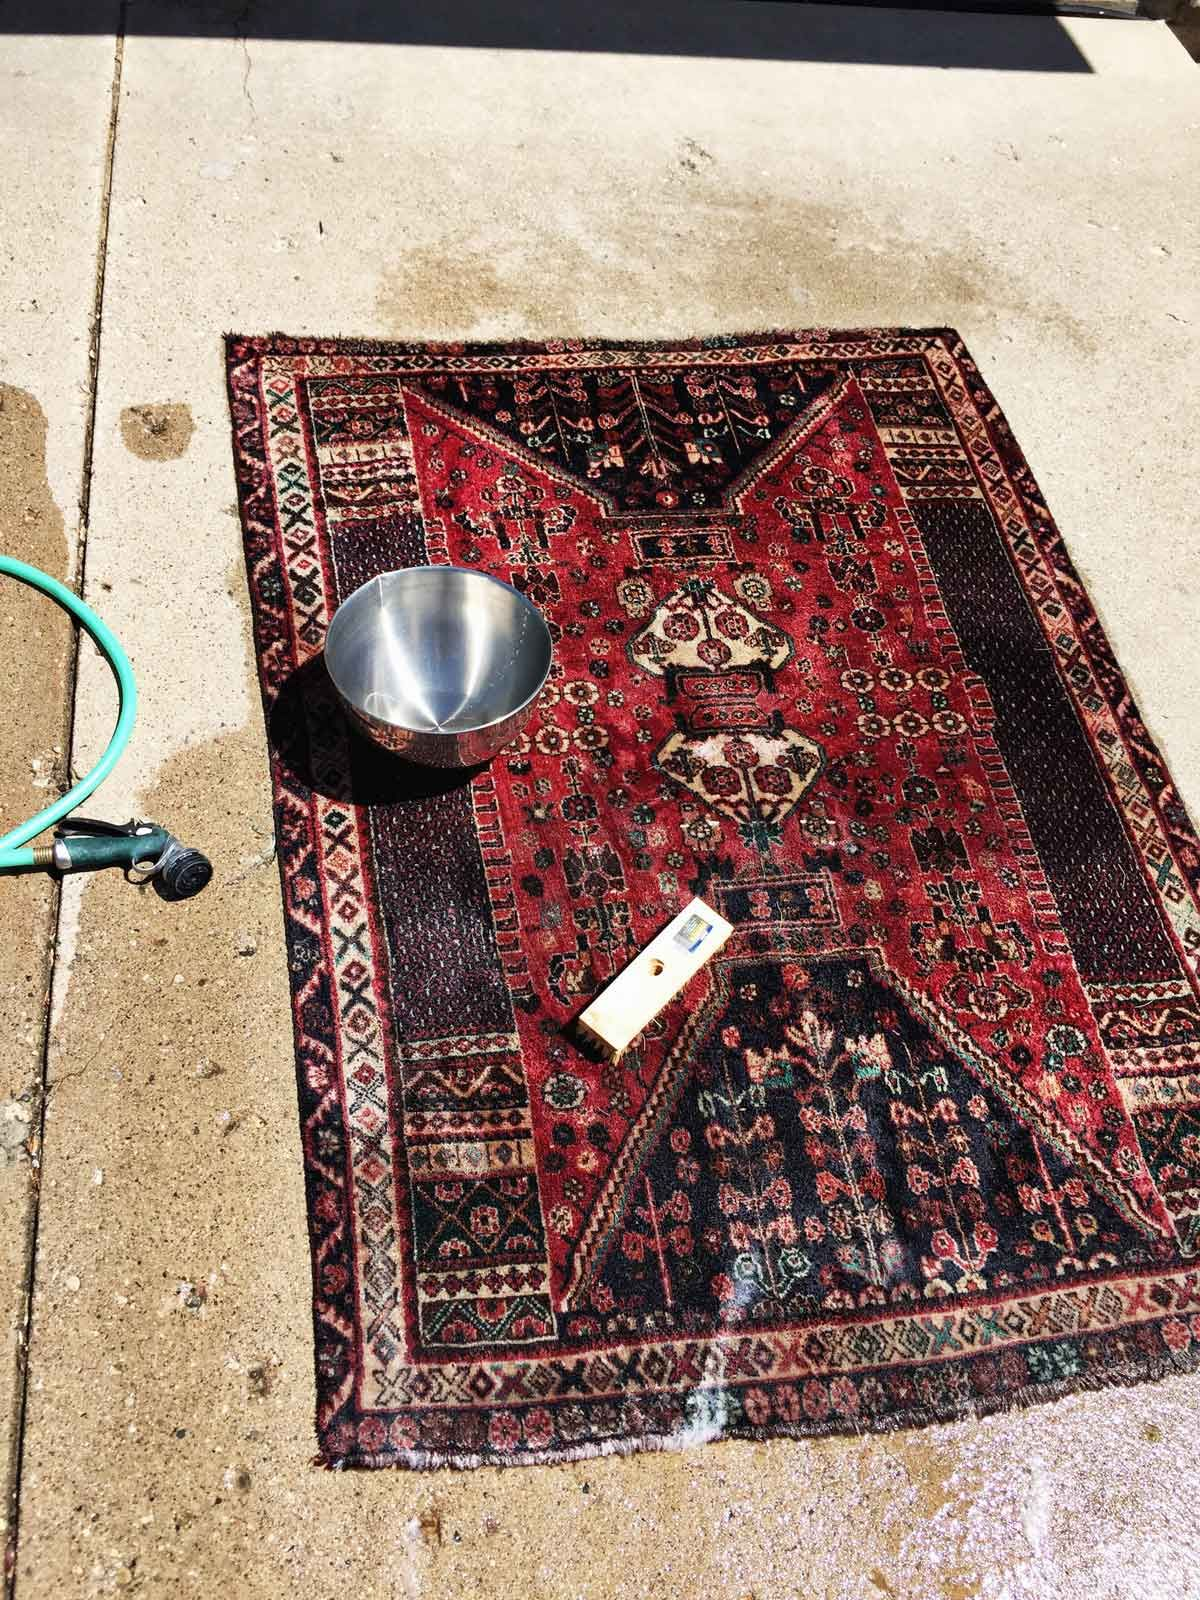 How To Wash A Thrifted Rug It Is Easy Rug Cleaning Diy Persian Rug Cleaning Rugs